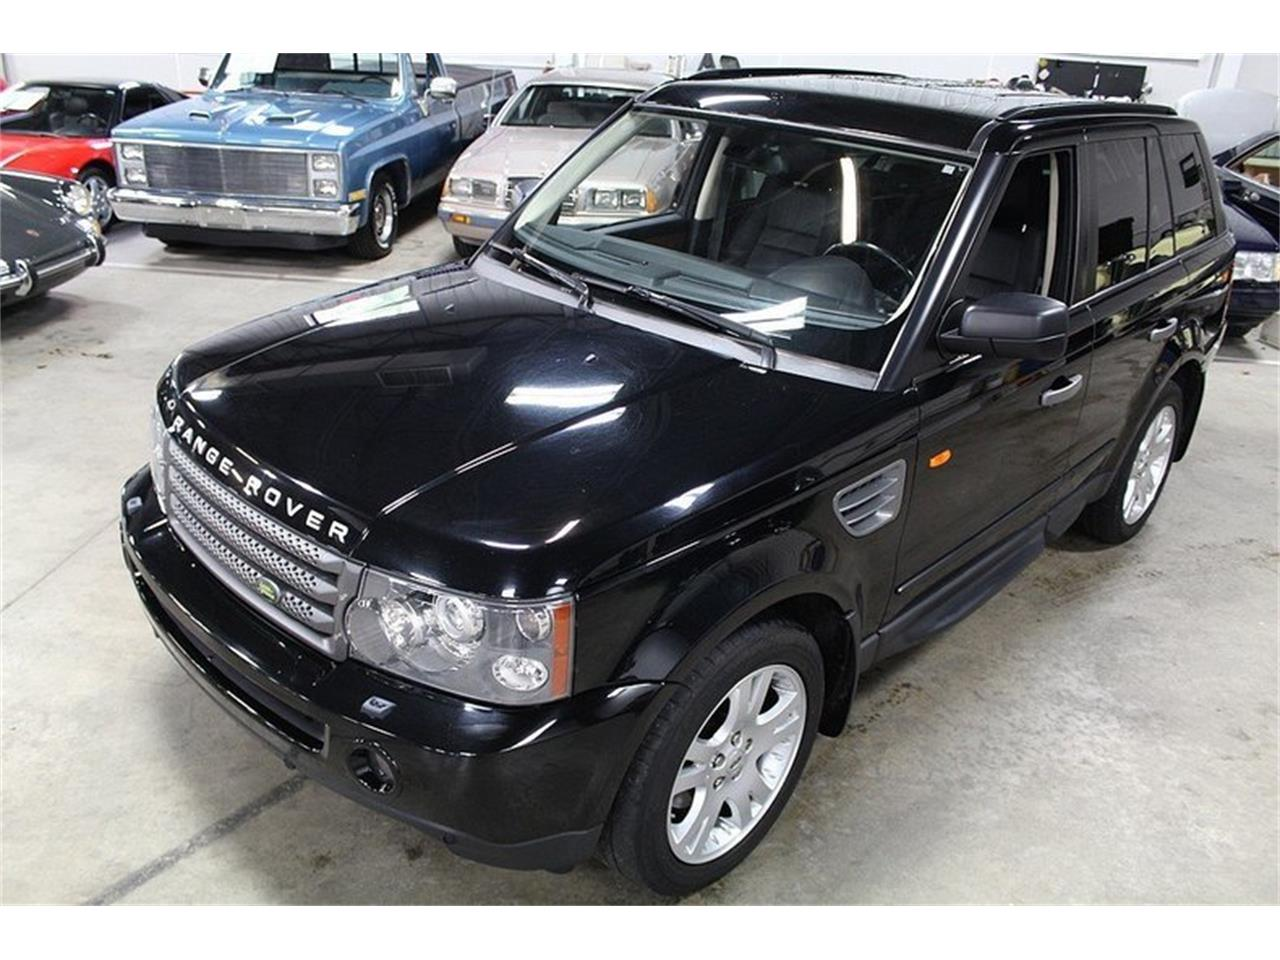 Large Picture of 2006 Land Rover Range Rover Sport located in Michigan - $12,900.00 - MGKZ